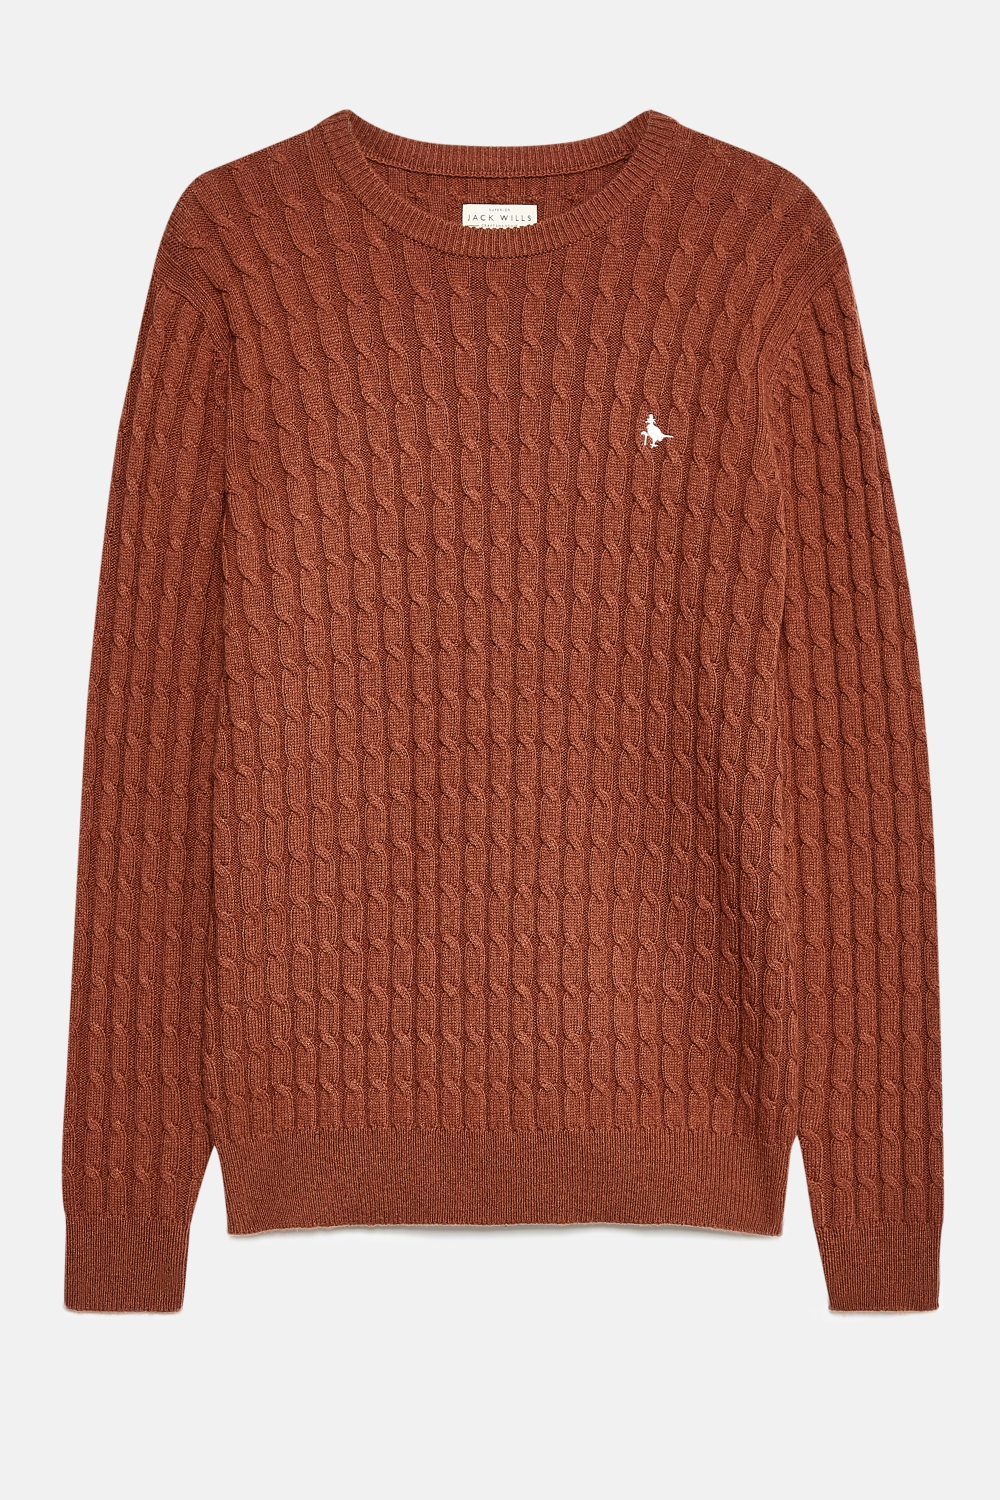 Jack Wills Ginger MARLOW WOOL BLEND CABLE KNIT CREW JUMPER